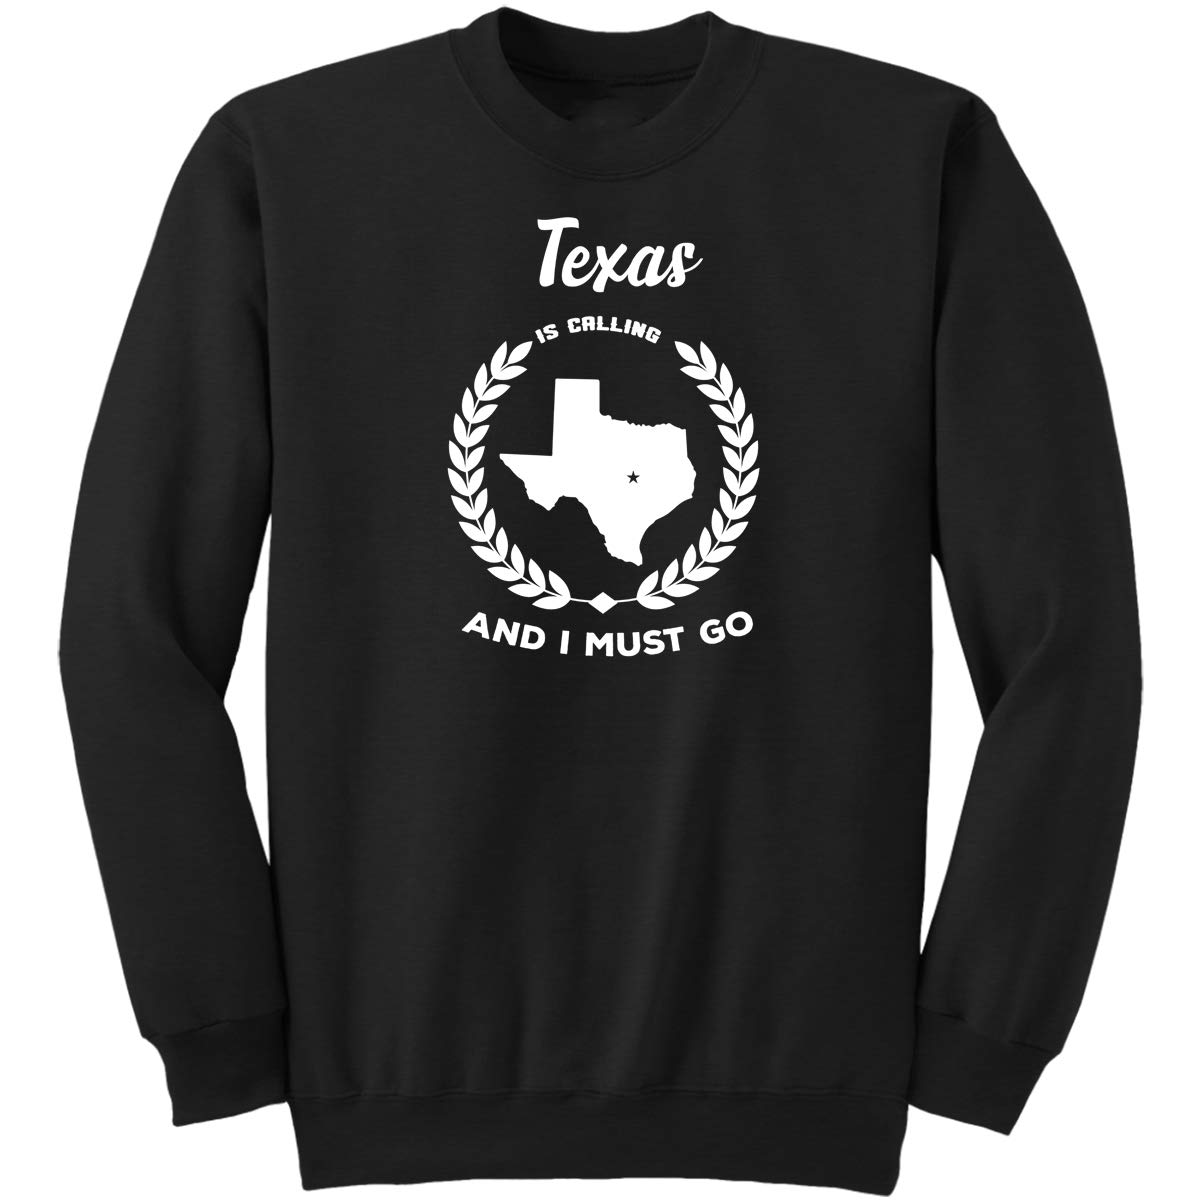 Texas is Calling and I Must Go Texas-State Funny Gifts Proud America Sweatshirt